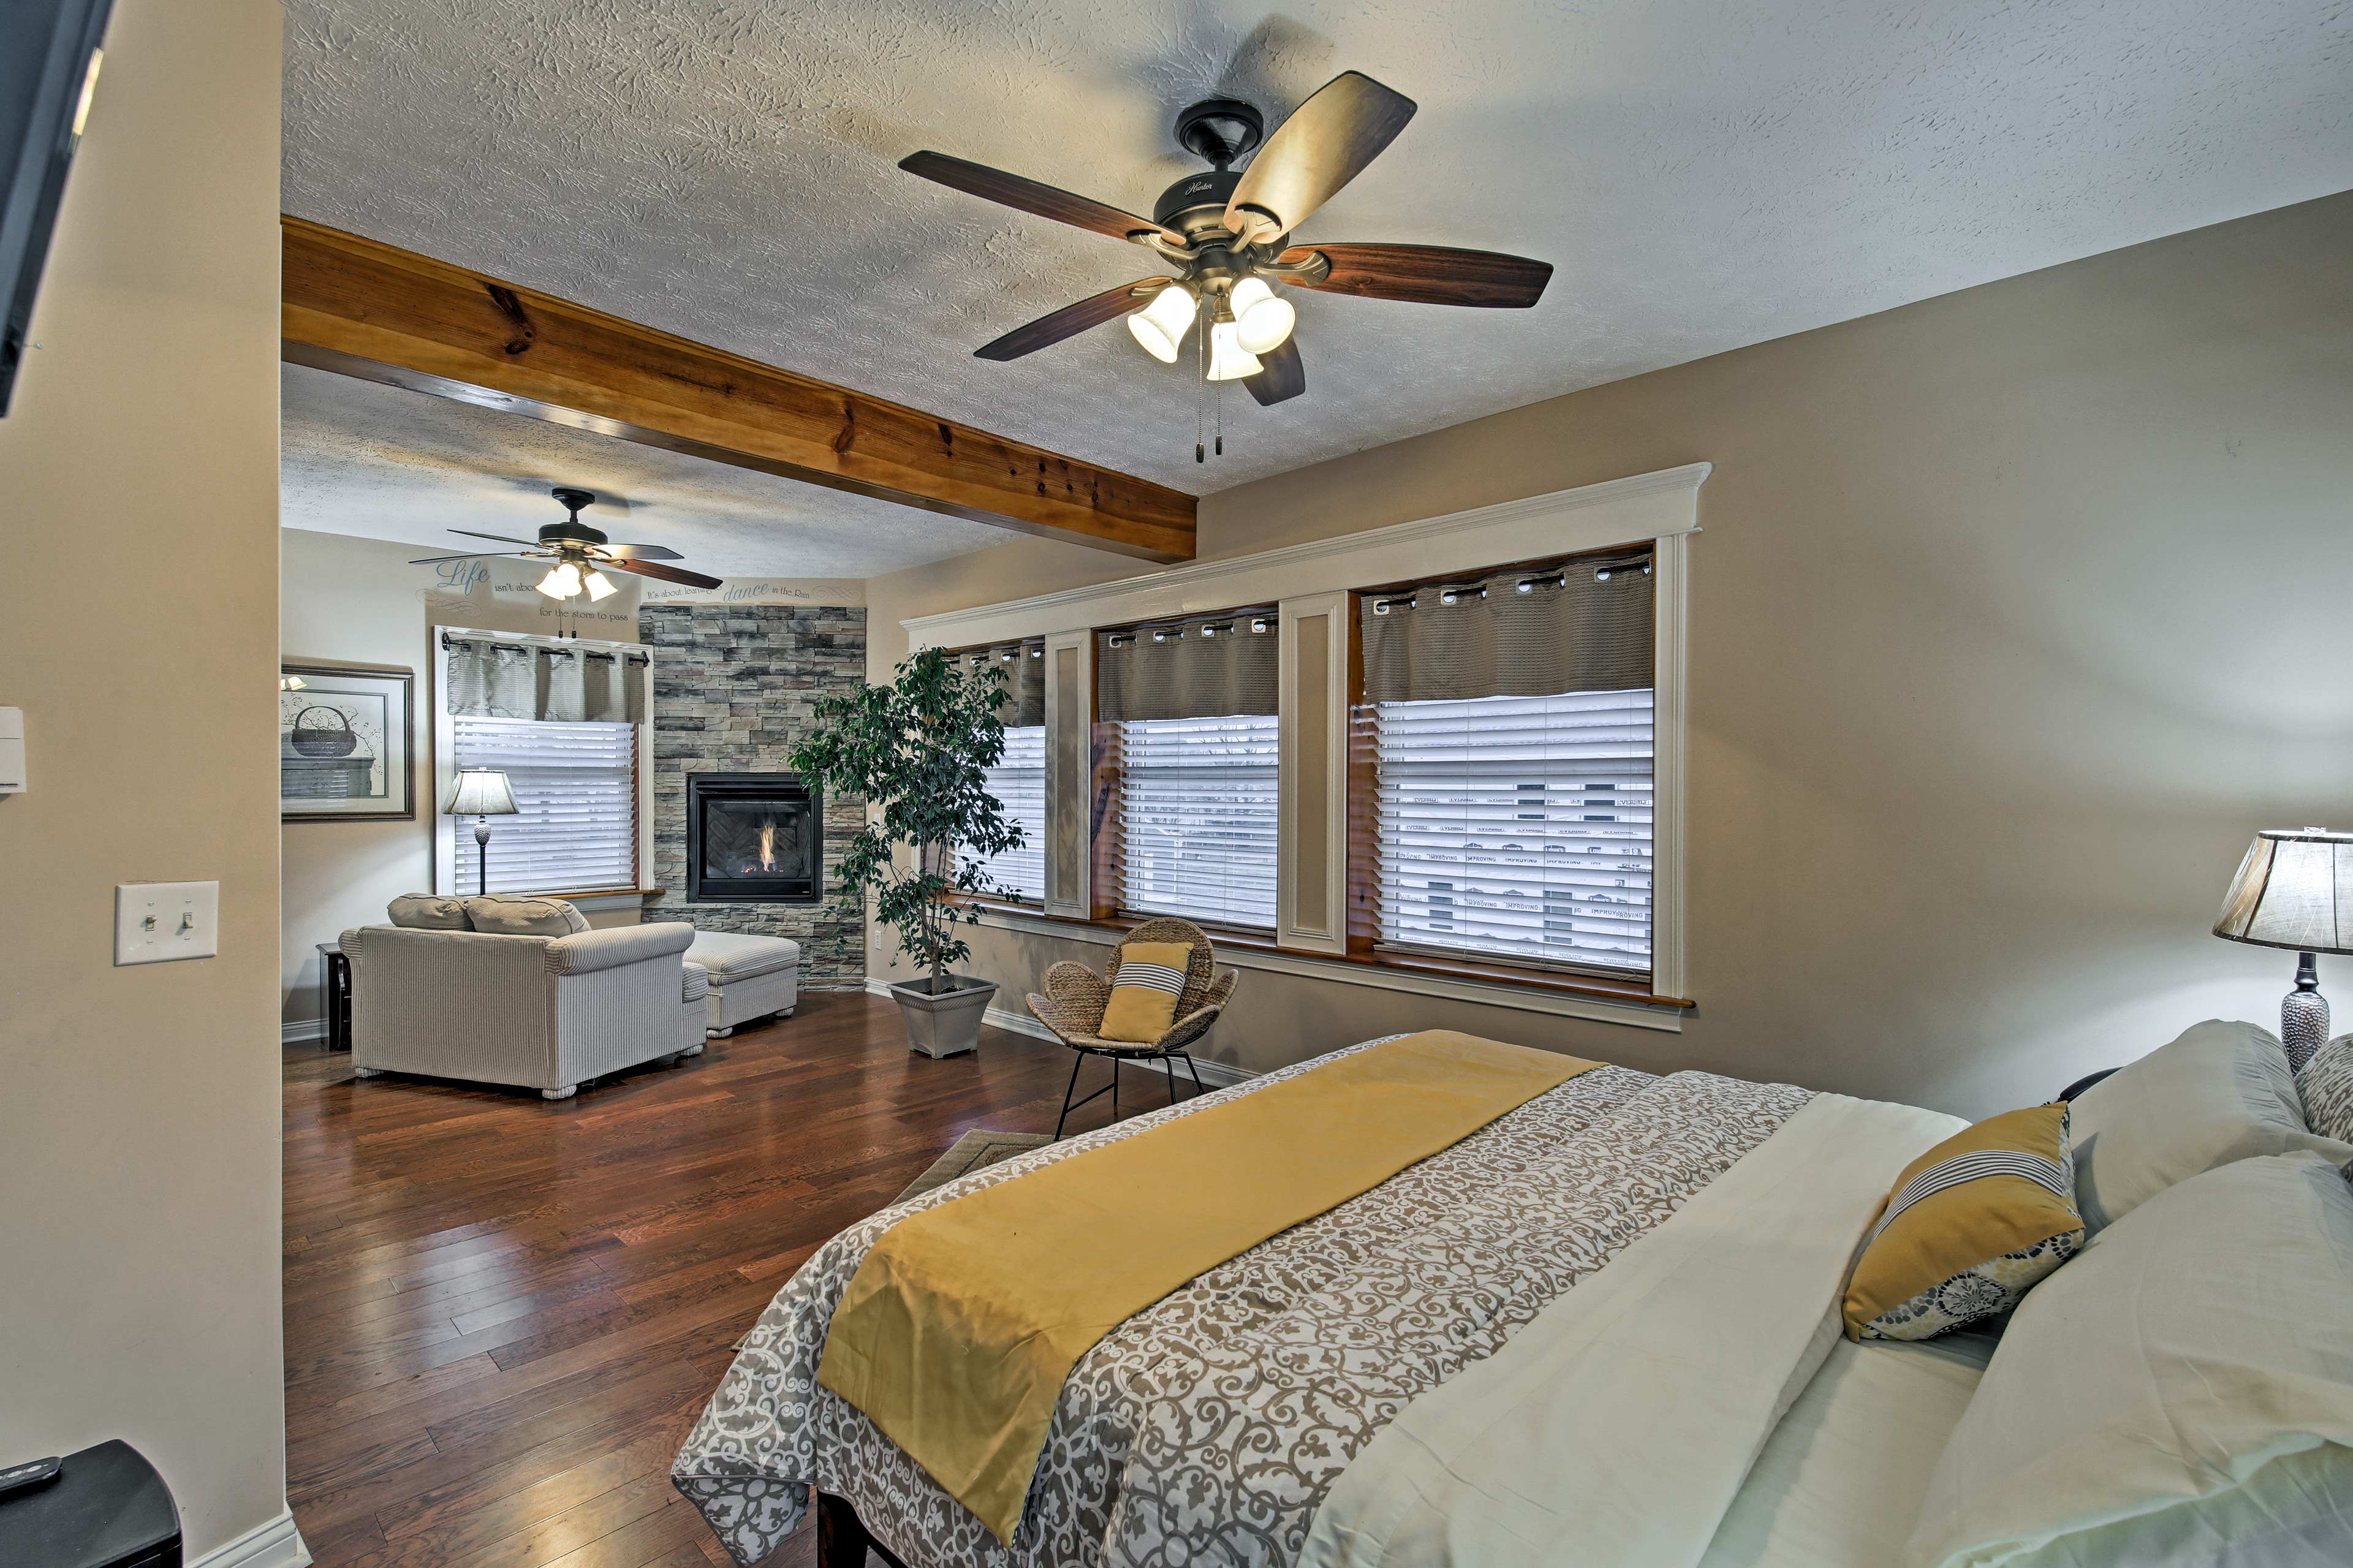 The master bedroom hosts a king bed, fireplace, and seating area.